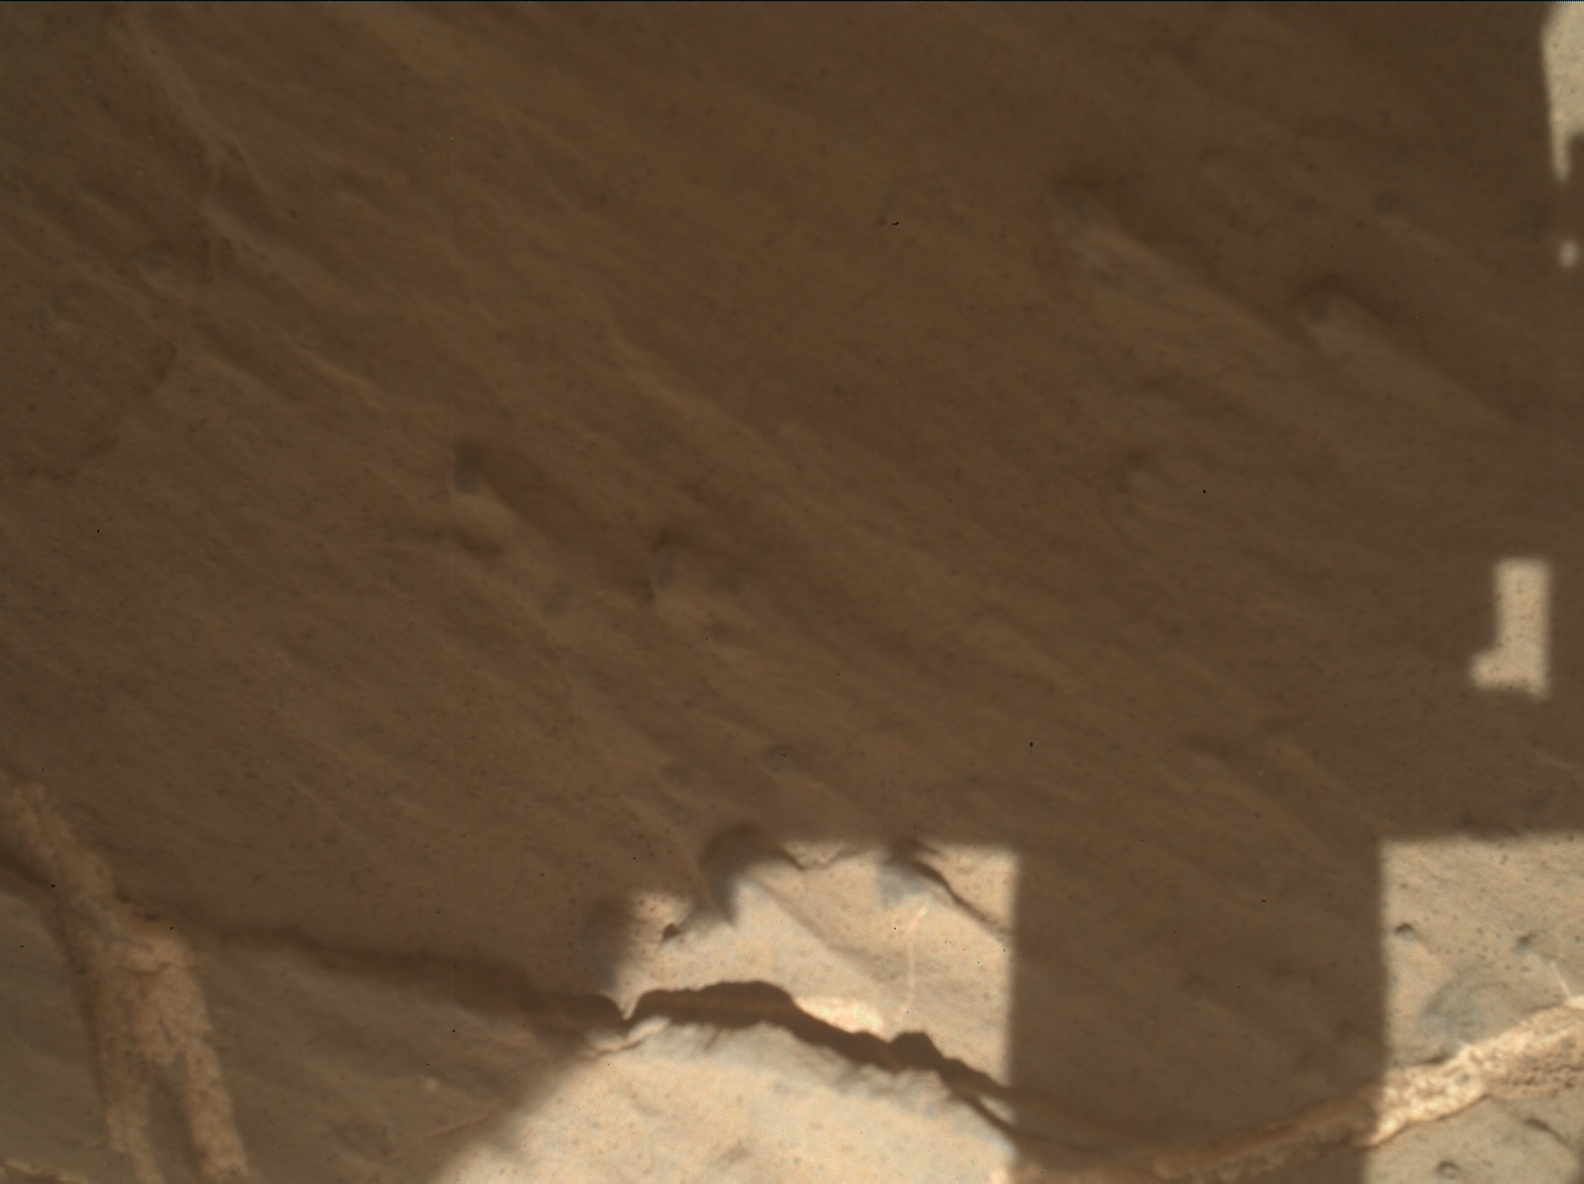 Nasa's Mars rover Curiosity acquired this image using its Mars Hand Lens Imager (MAHLI) on Sol 2613